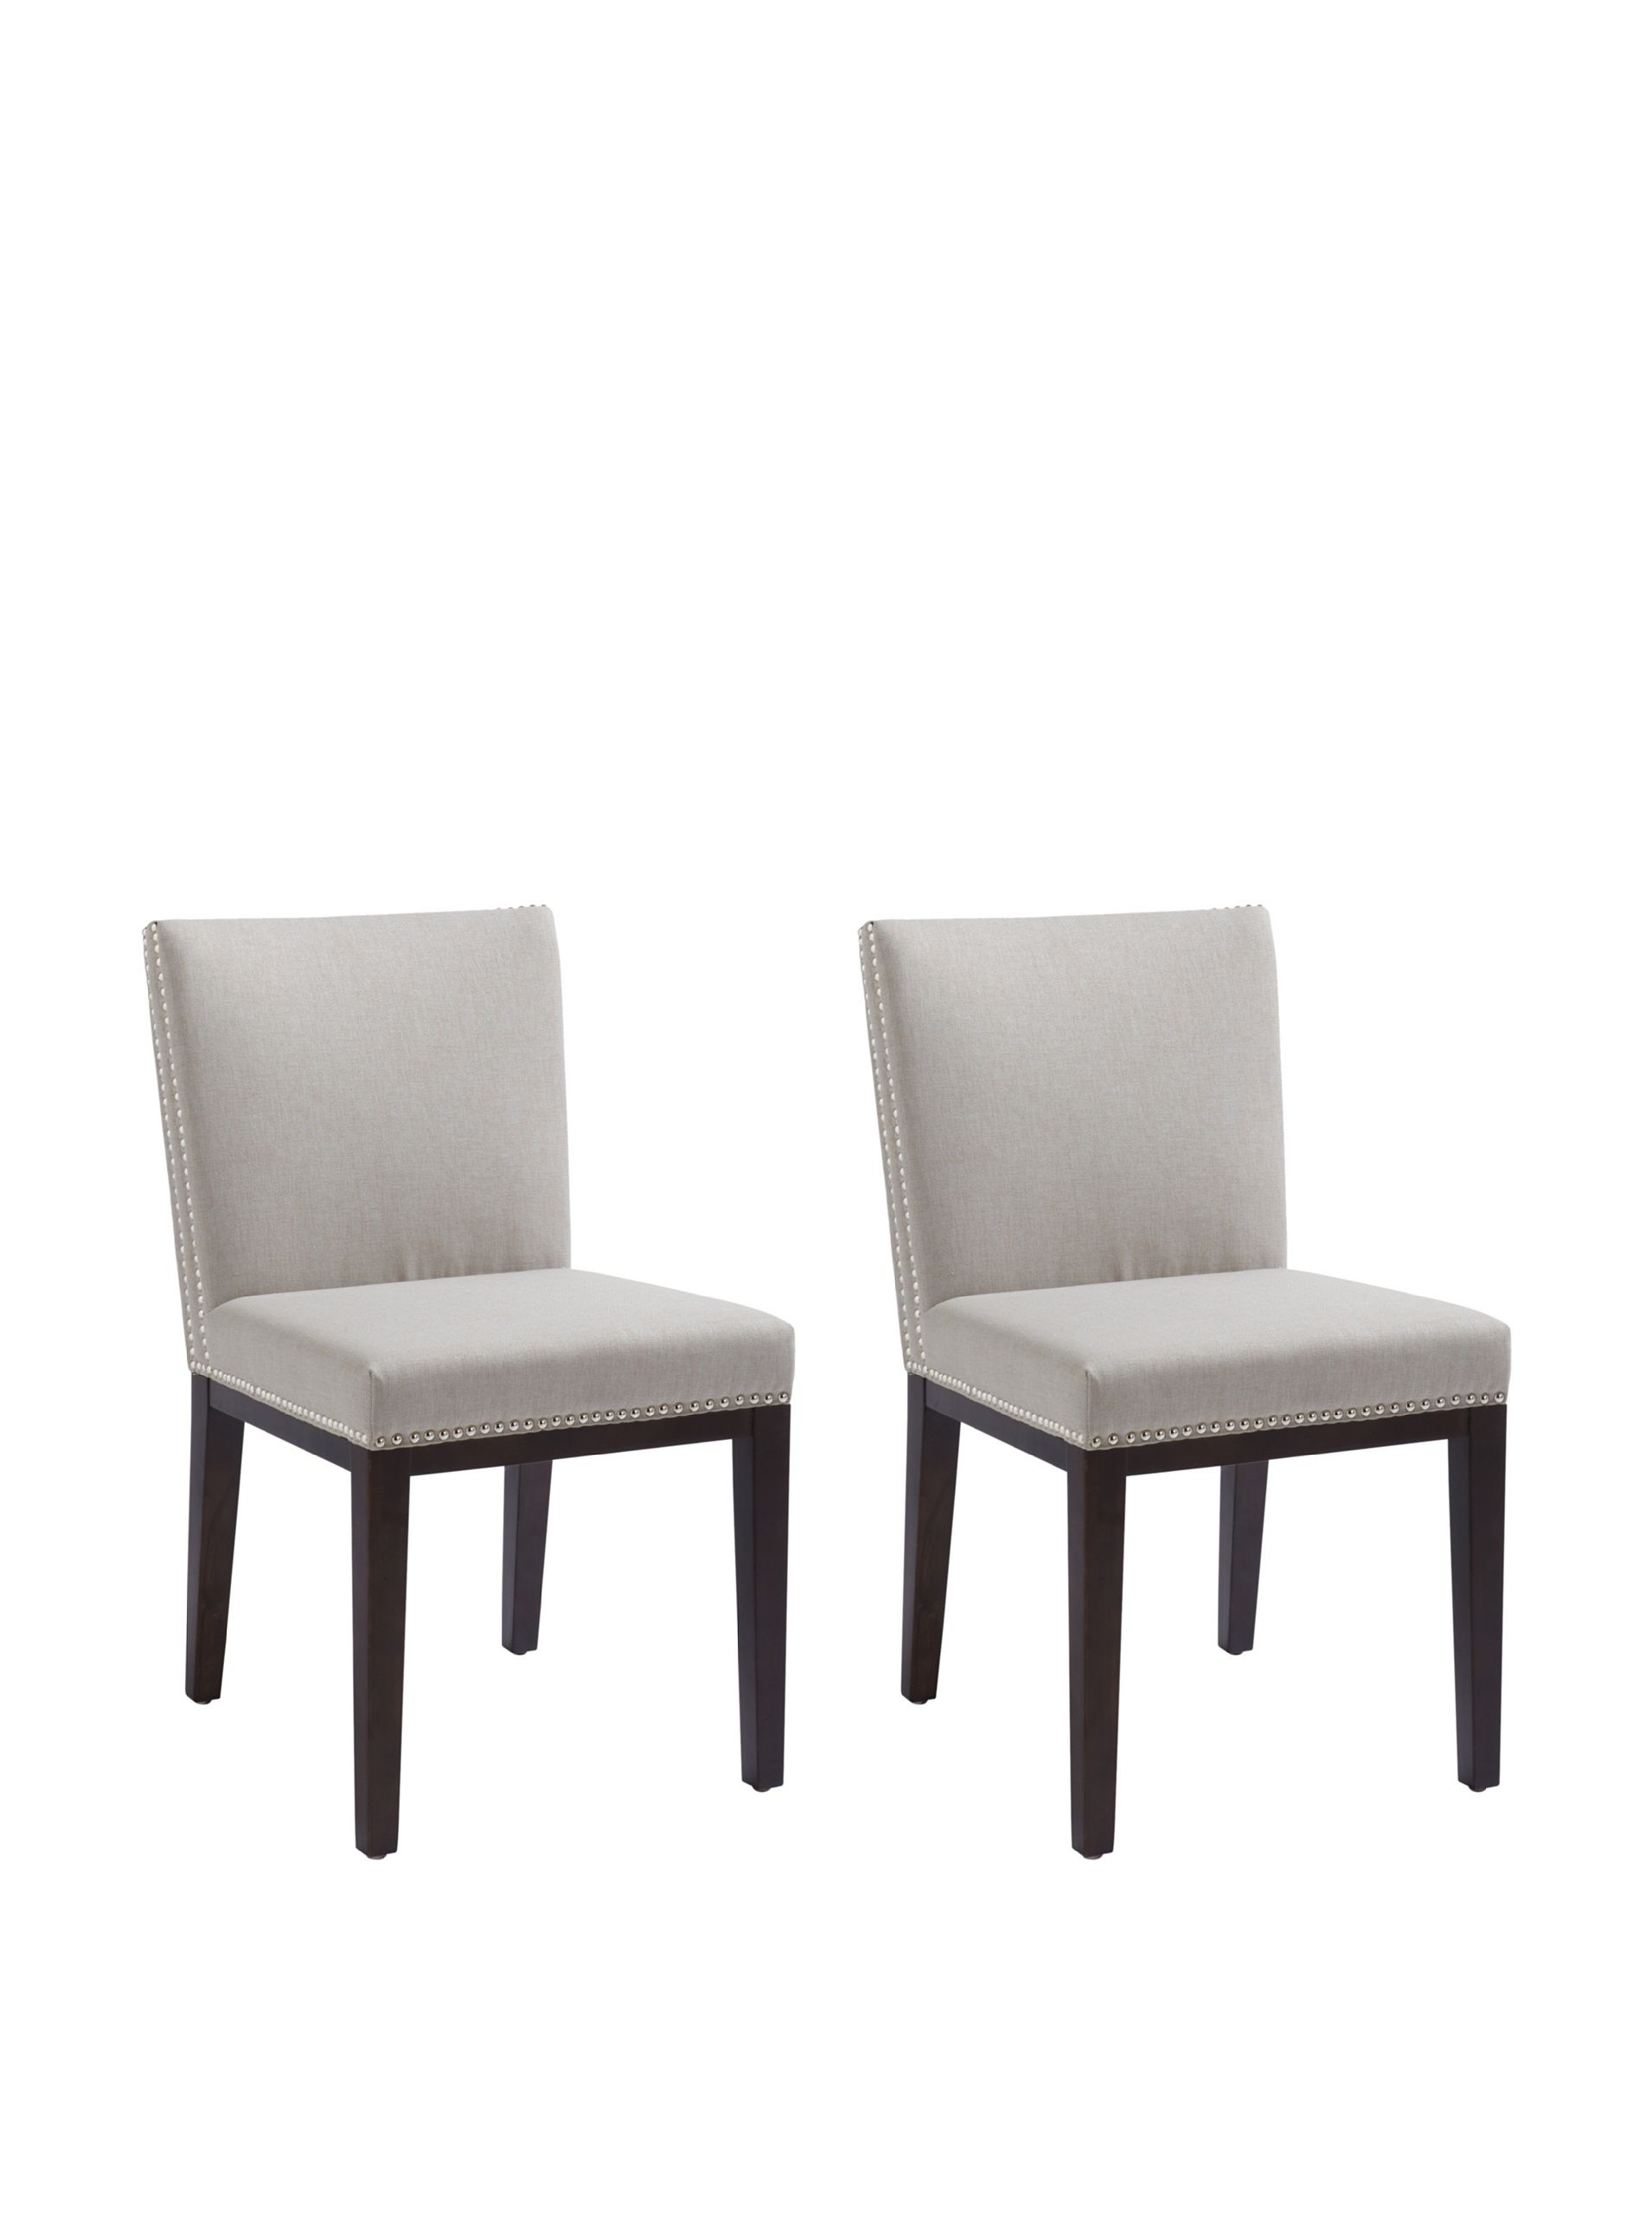 Sunpan set of 2 vintage chairs grey classic design features a neutral linen like cushion with nailhead accents and espresso finished legs 18